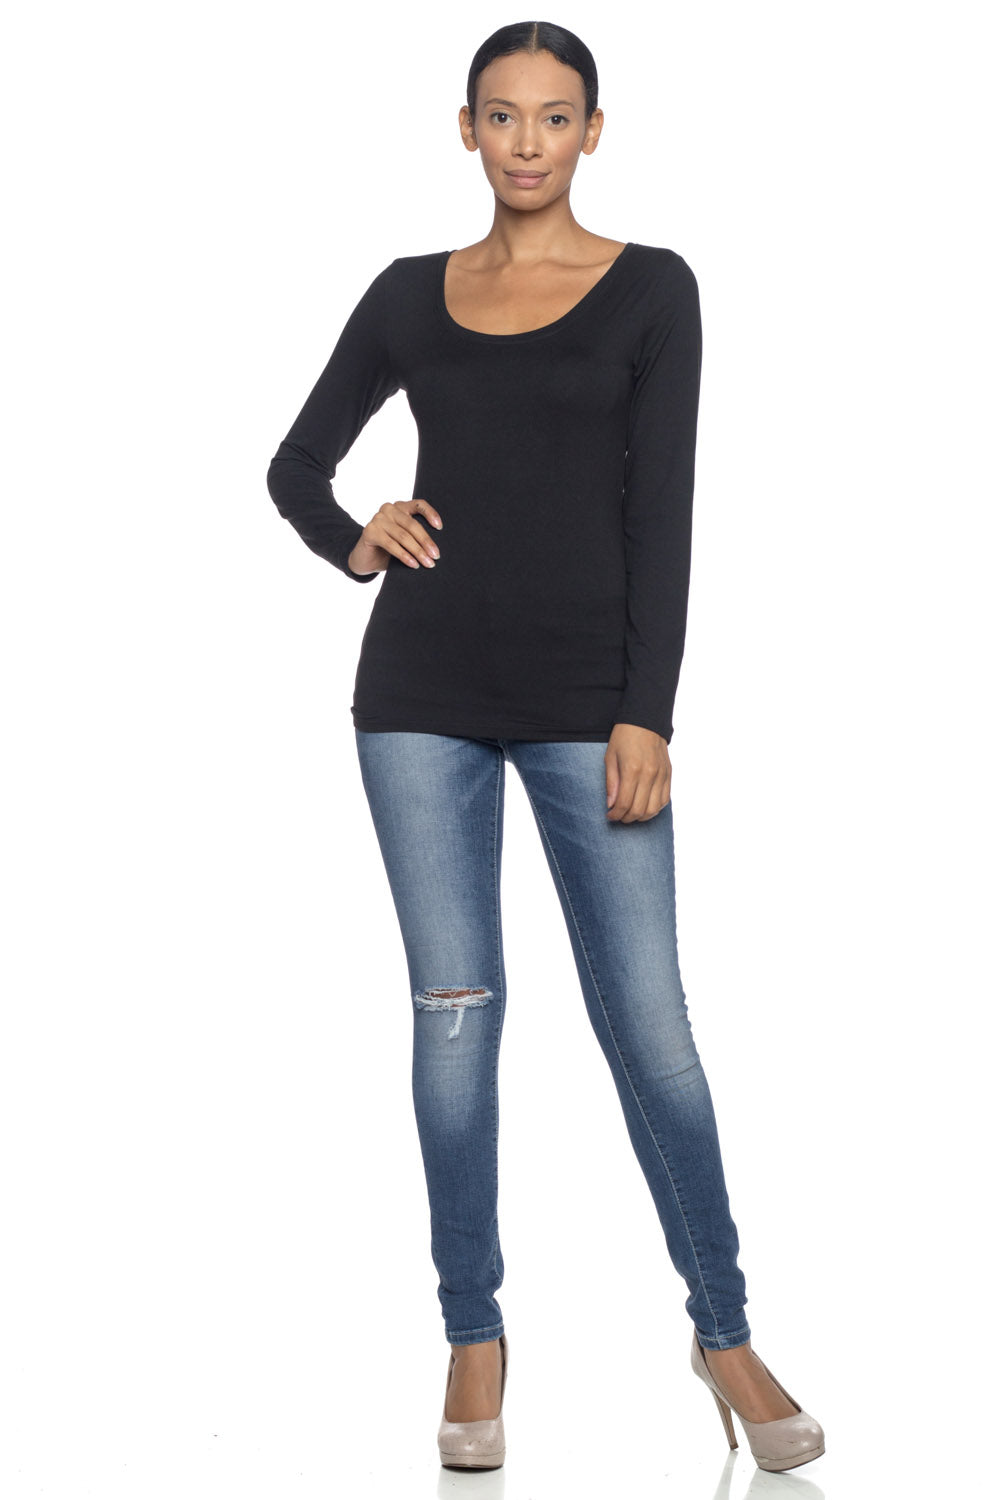 Top - BT1842 - Capella Apparel